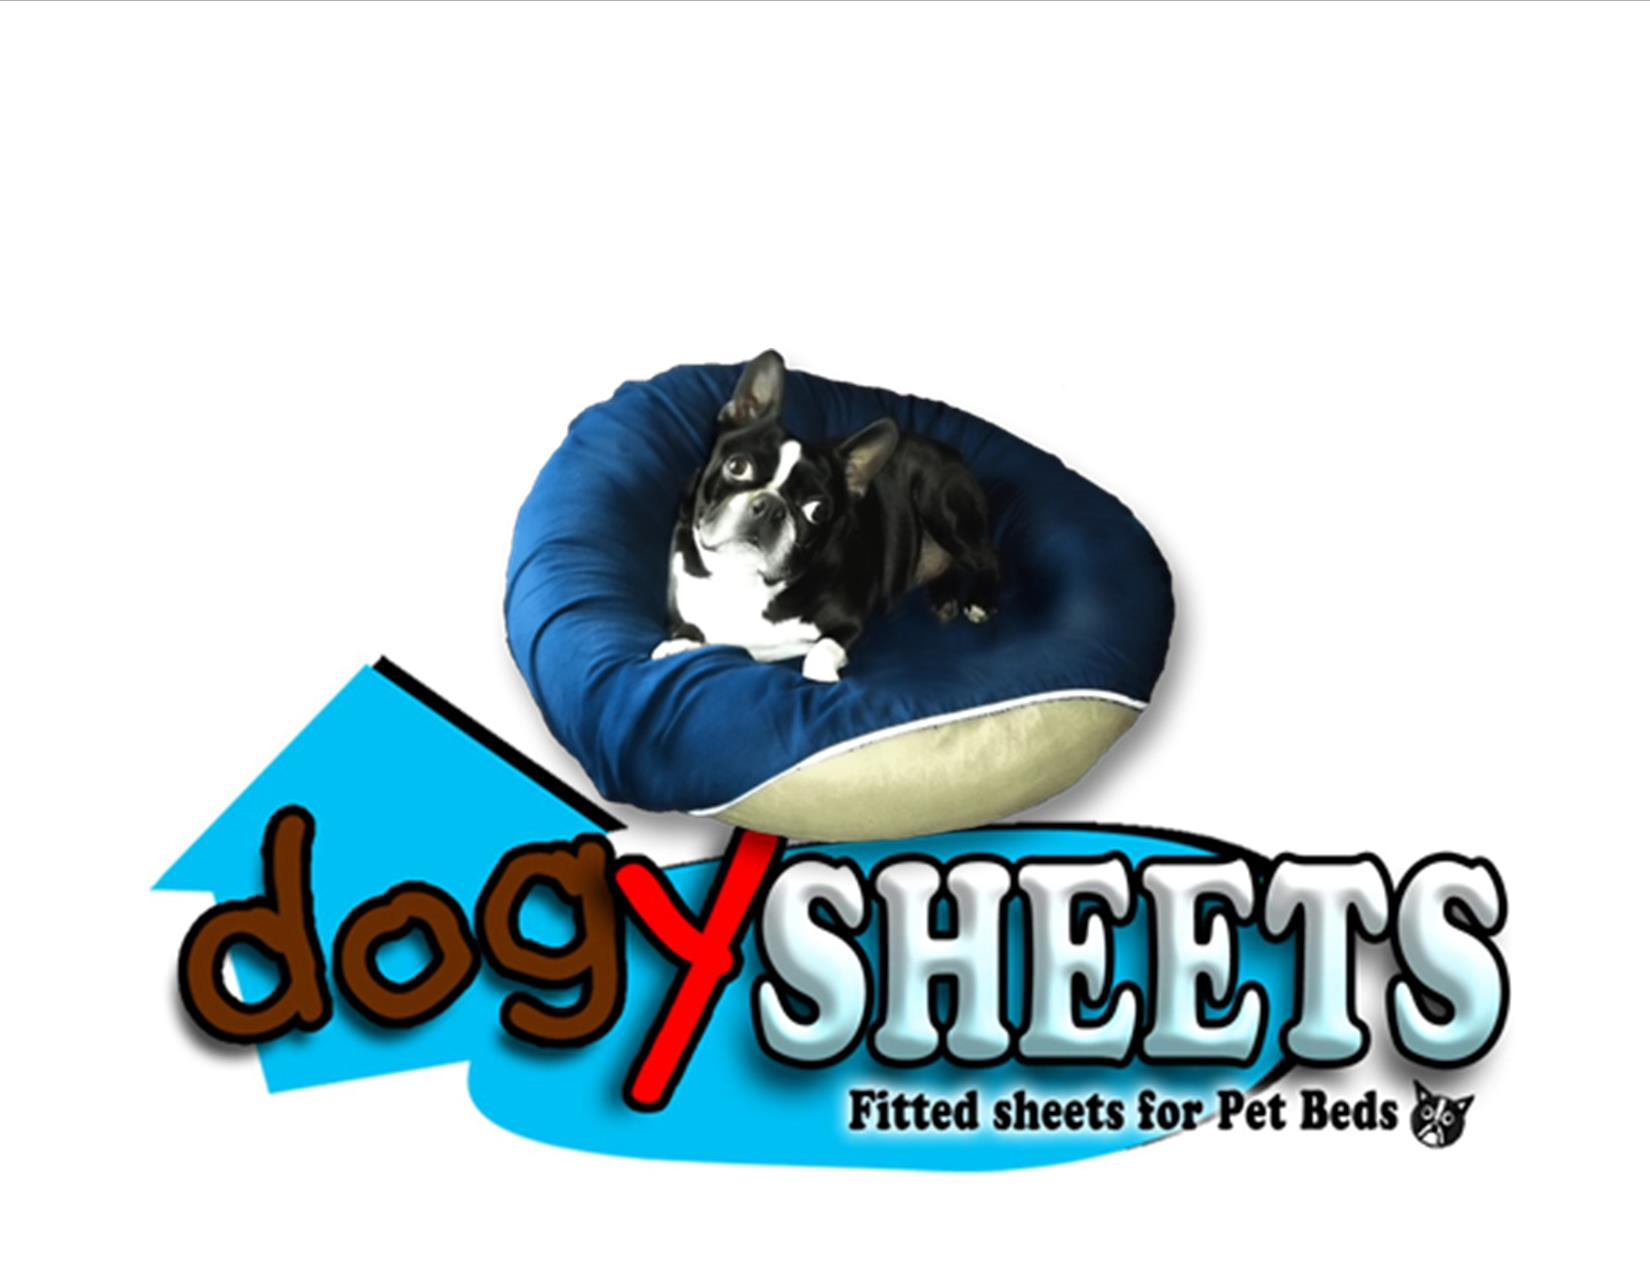 Dogysheets